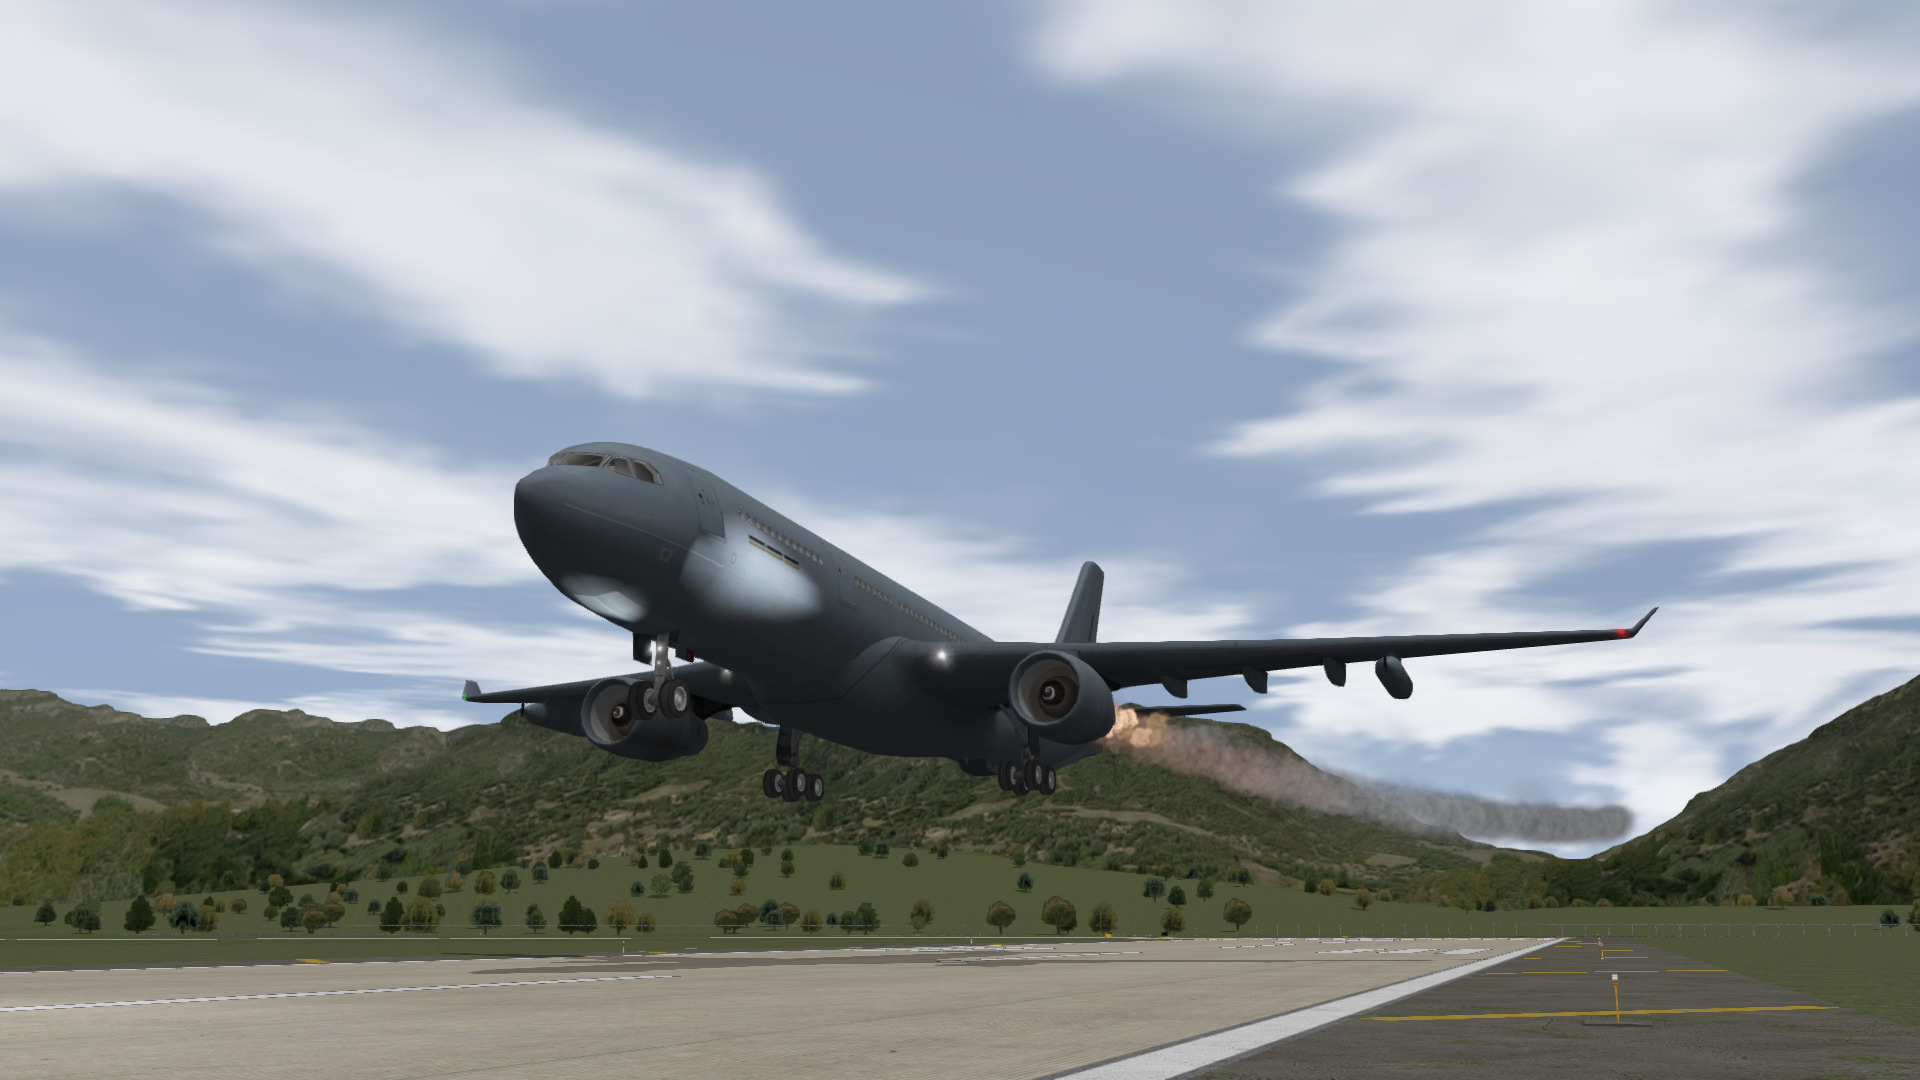 A-330 Emergency landing at an airbase with left engine fire.